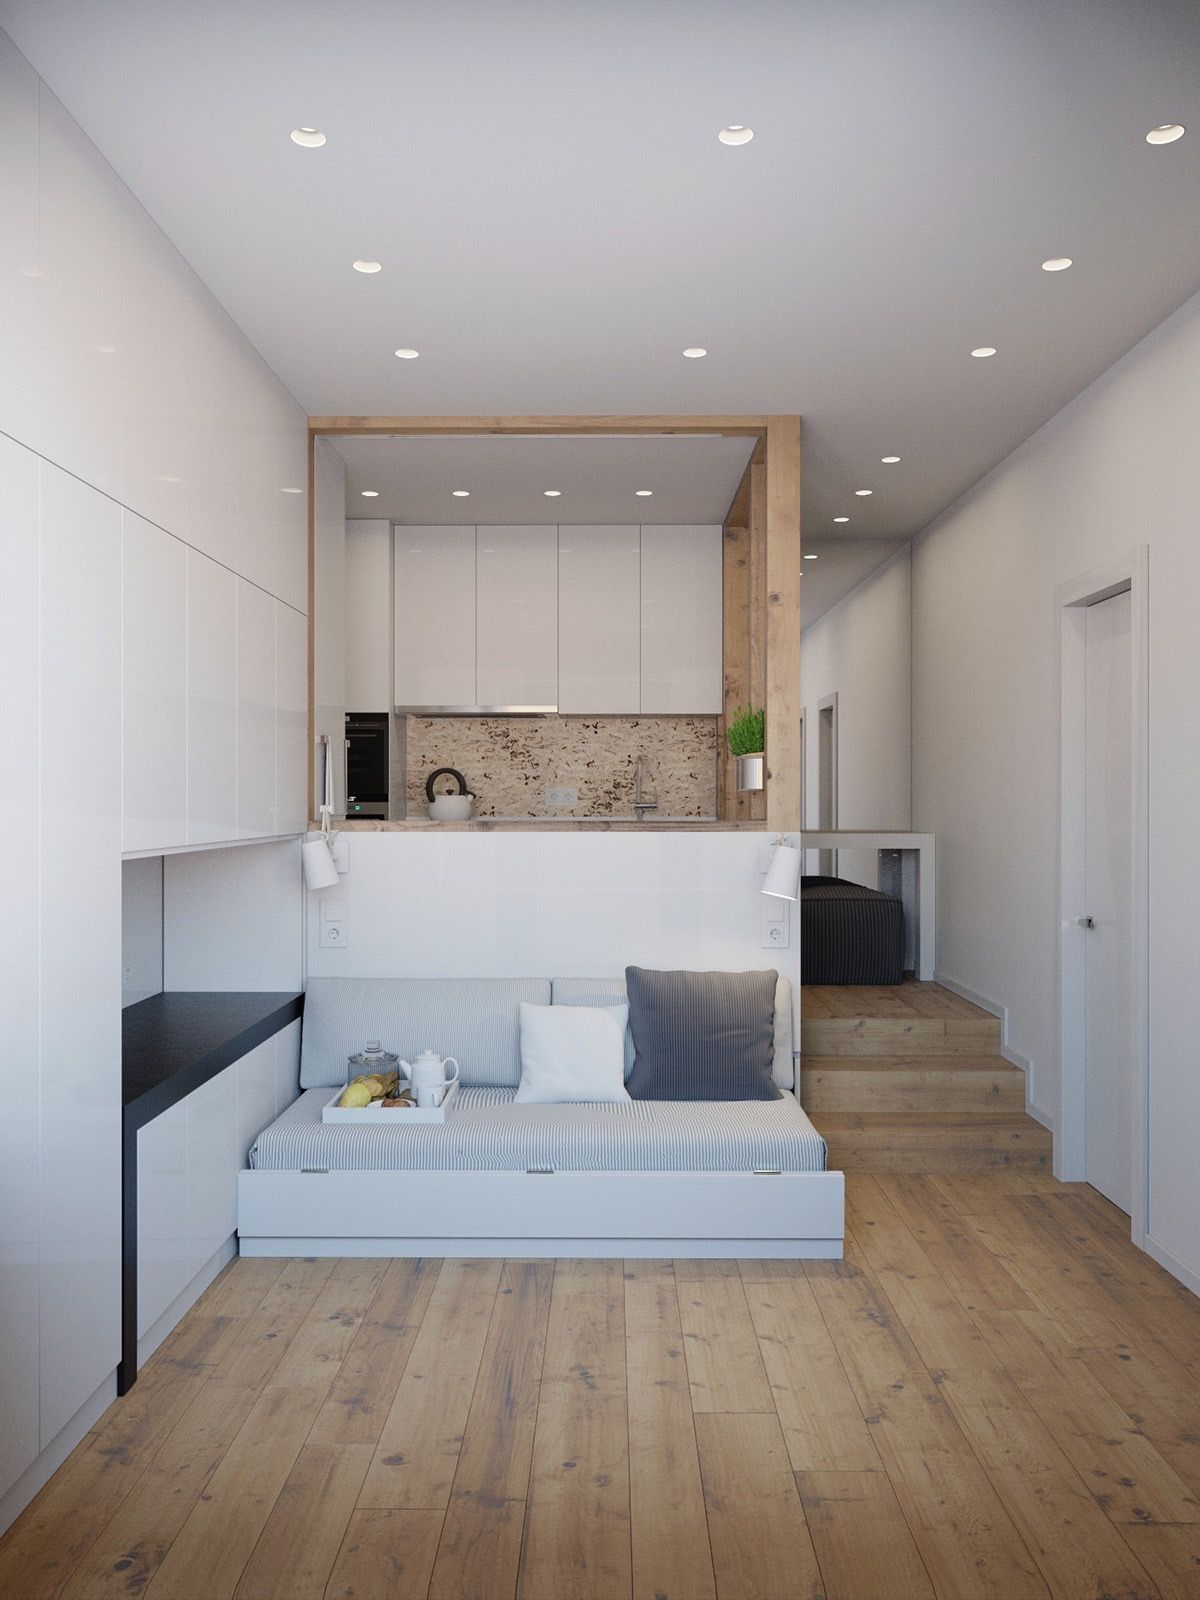 Our final living space coming in at 25sqm is a truly innovative use of space white walled interiors showcase a kitchen and living space with the kitchen